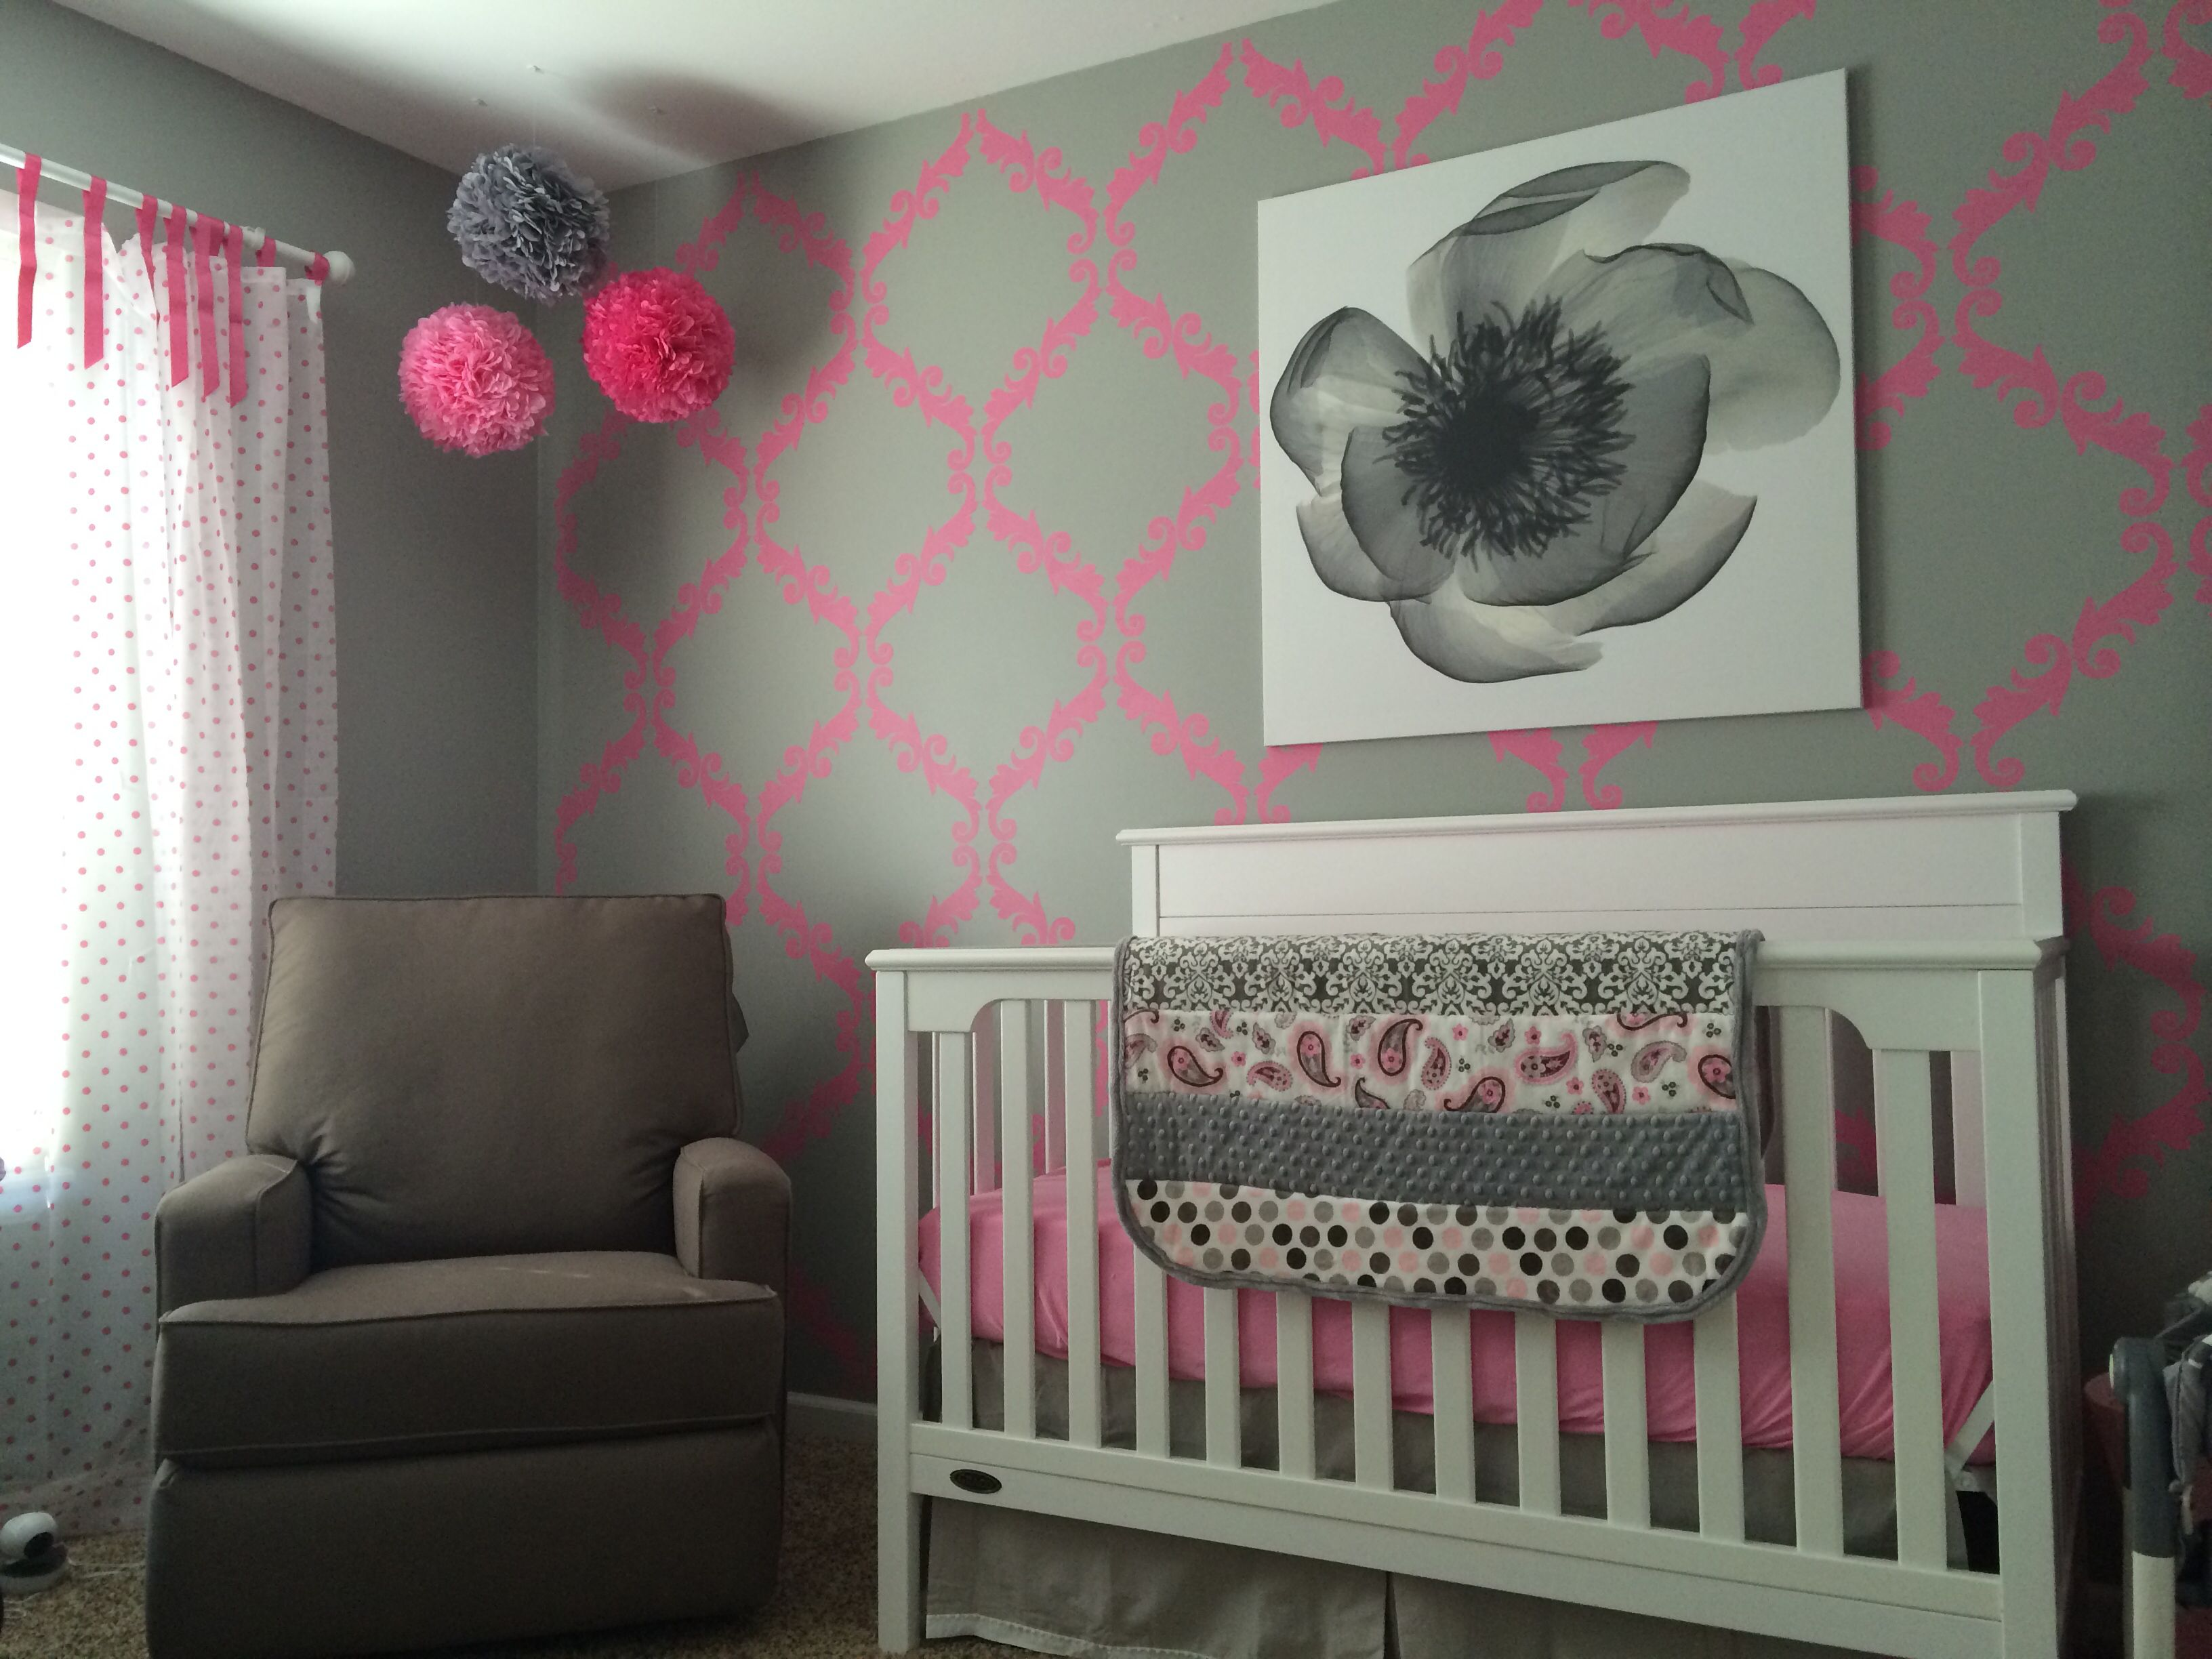 Baby girl nursery sw ellie gray and vivacious pink wall stencil baby girl nursery sw ellie gray and vivacious pink wall stencil from royal designs amipublicfo Image collections